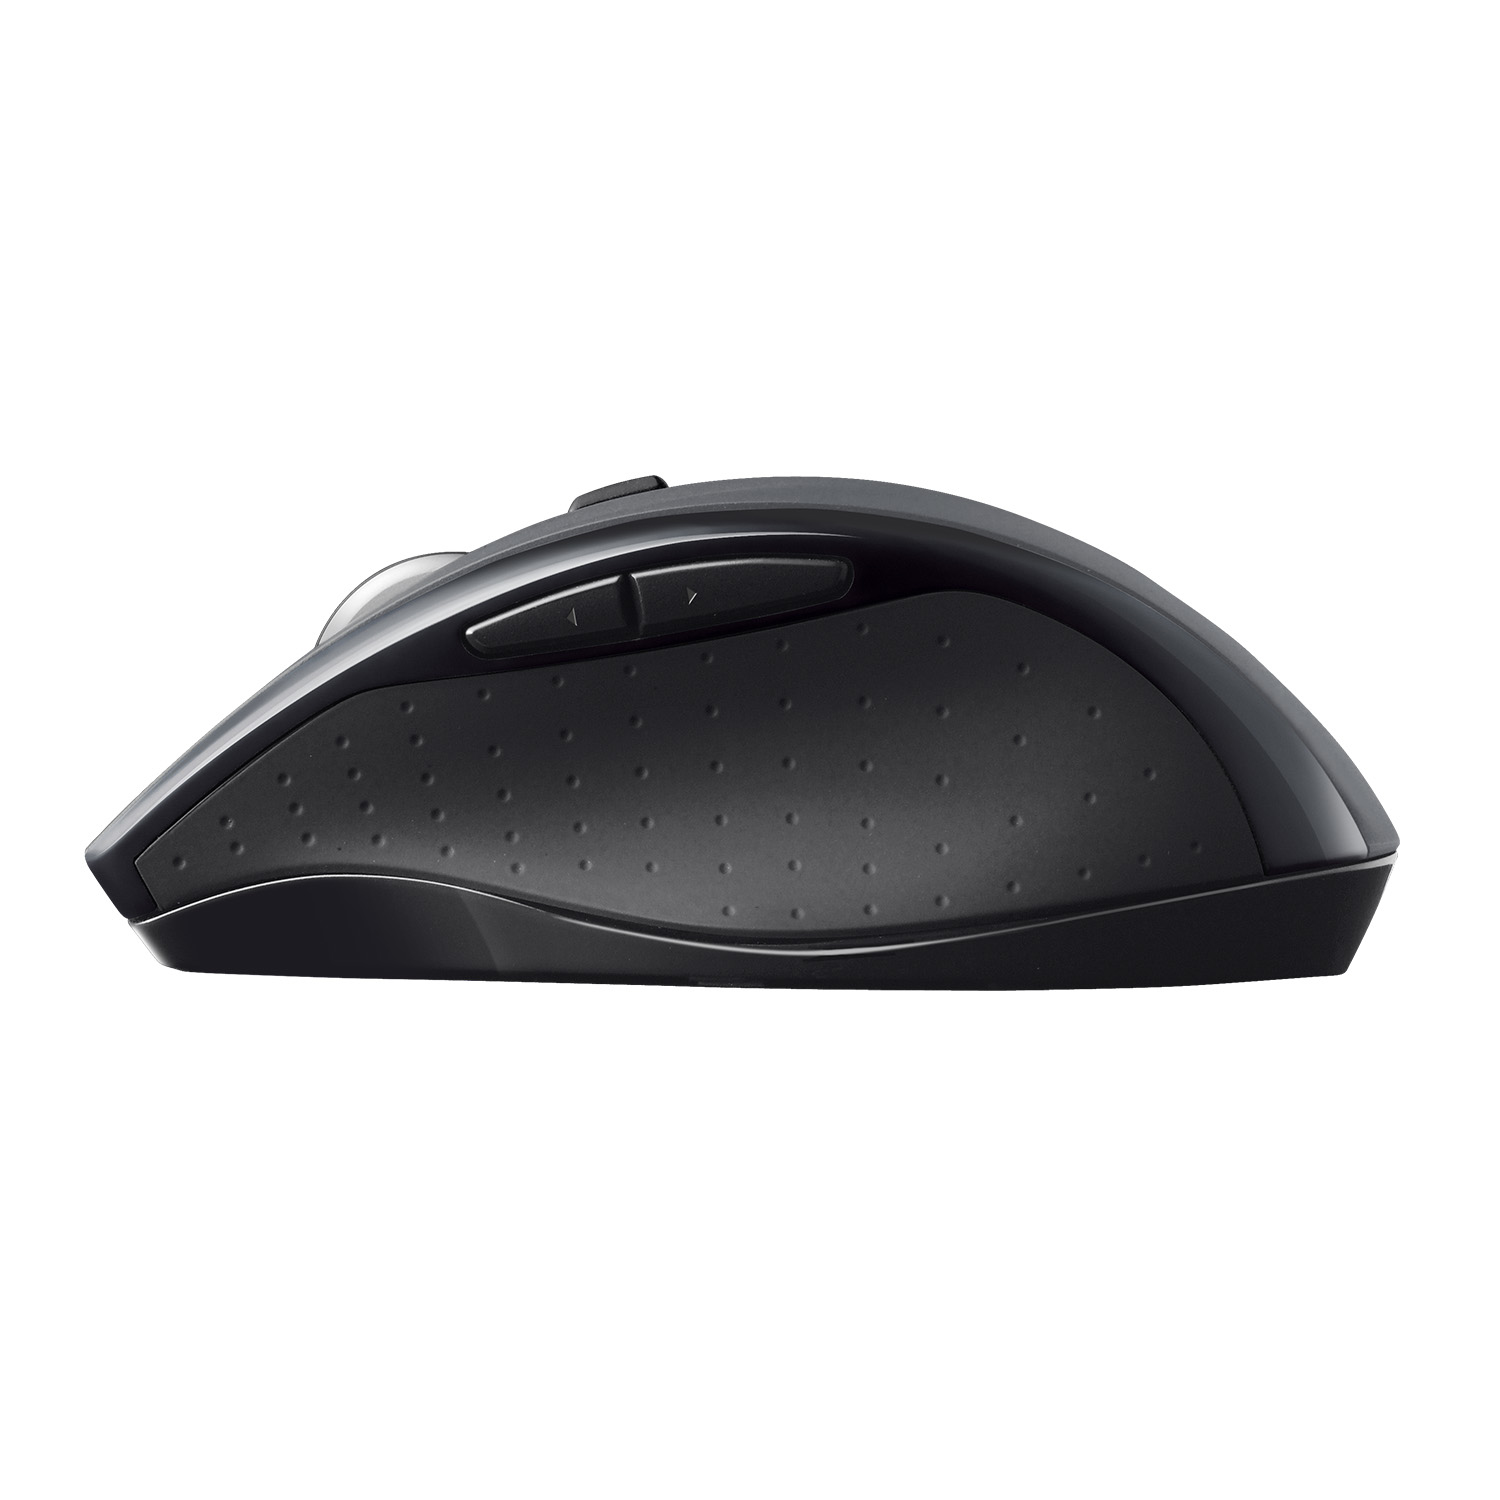 M705 Wireless Mouse (zilver)